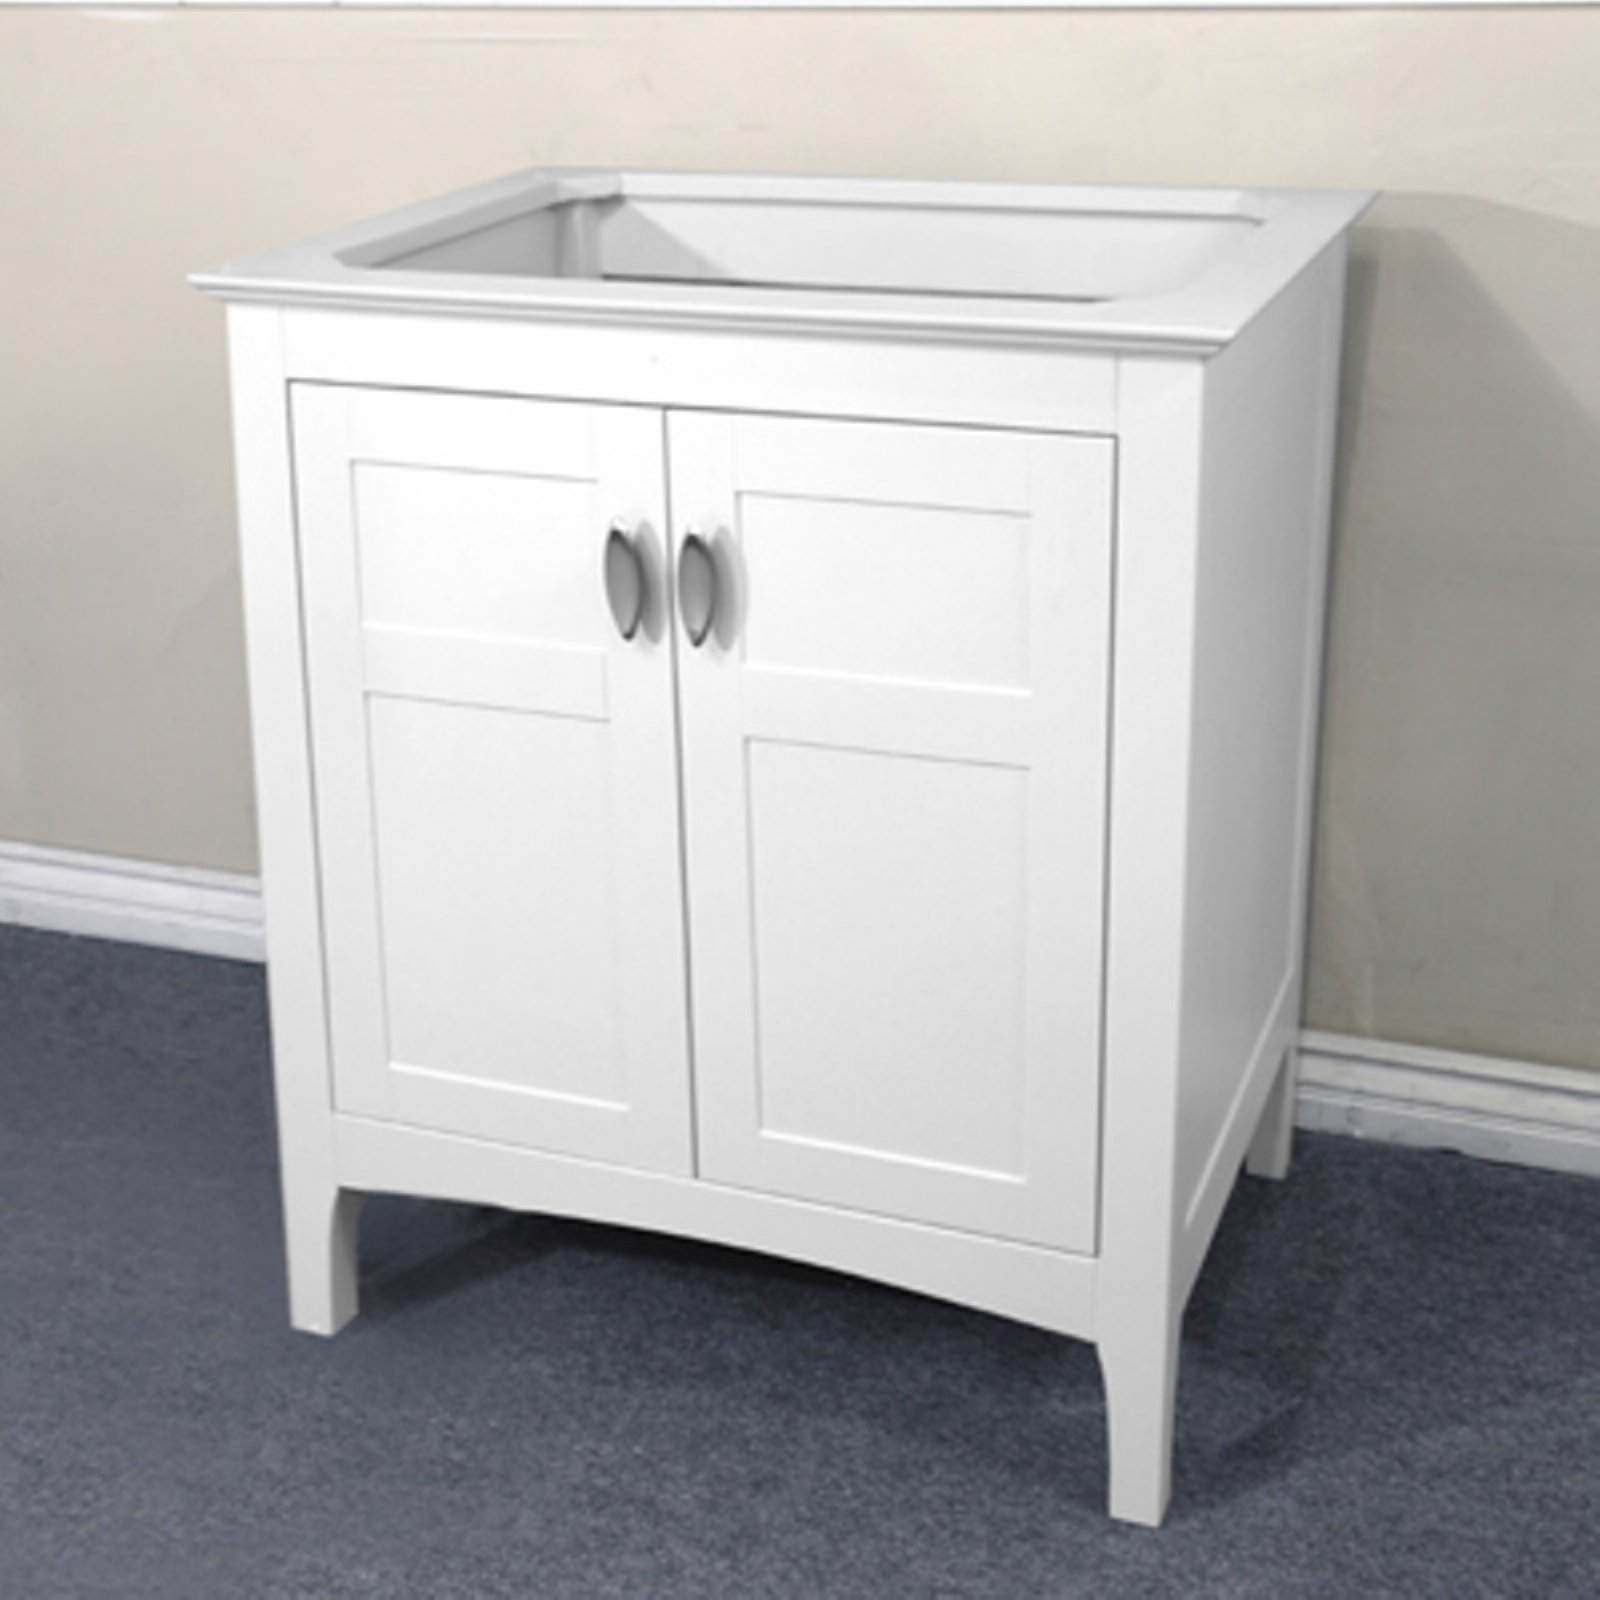 Bellaterra Home 29 in. Single Sink Bathroom Vanity Base